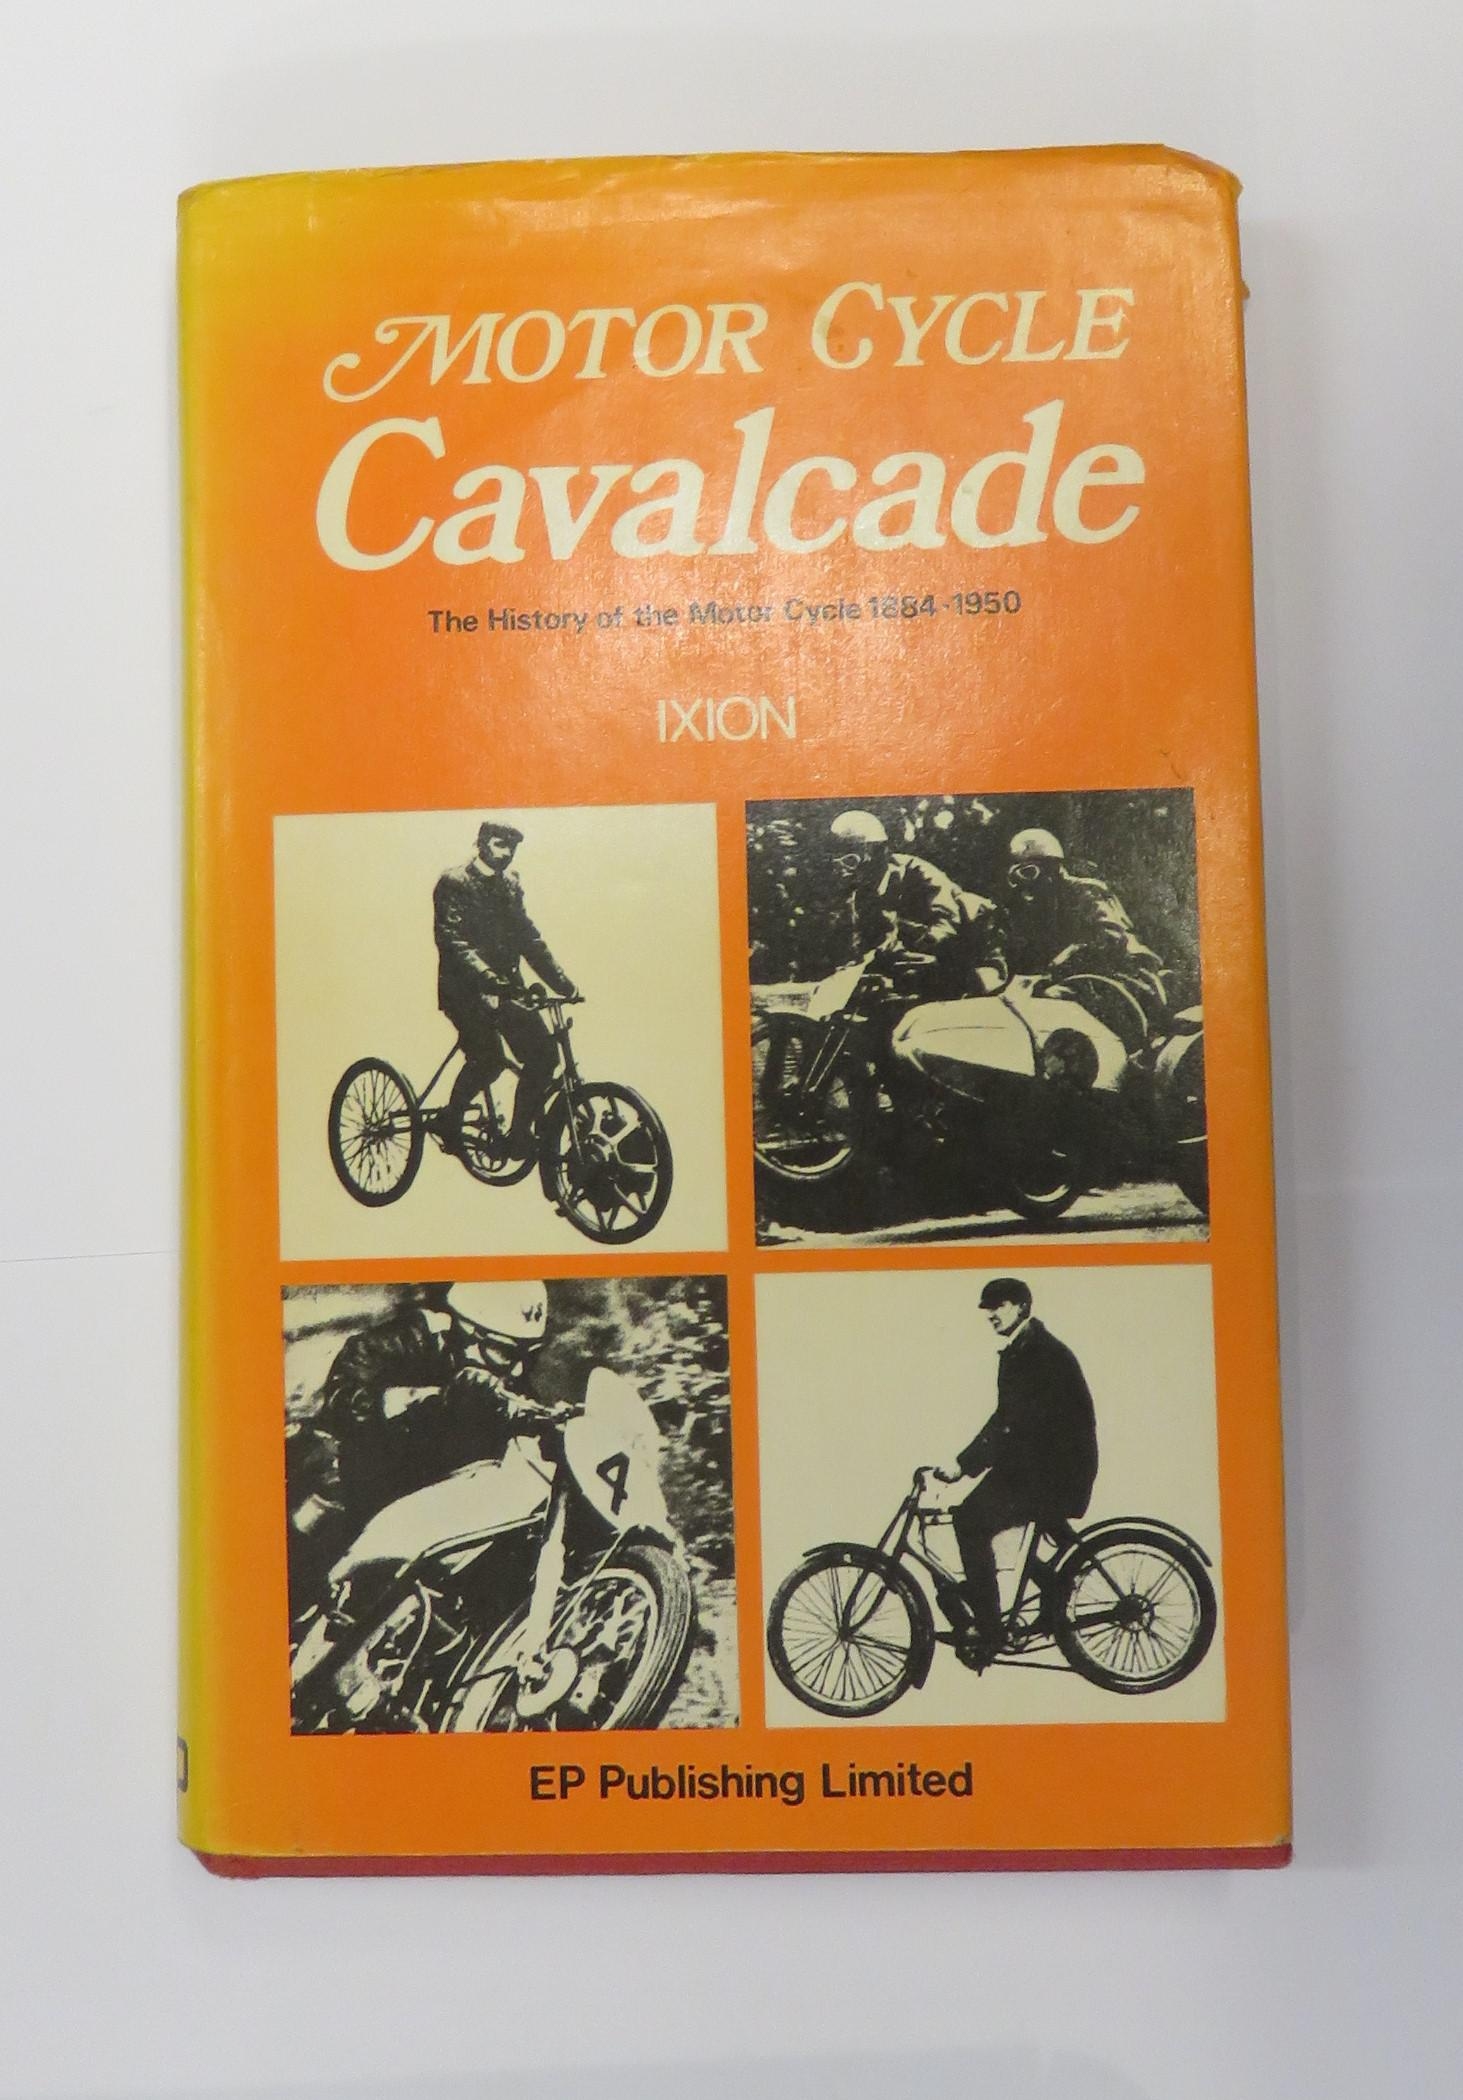 Motor Cycle Cavalcade